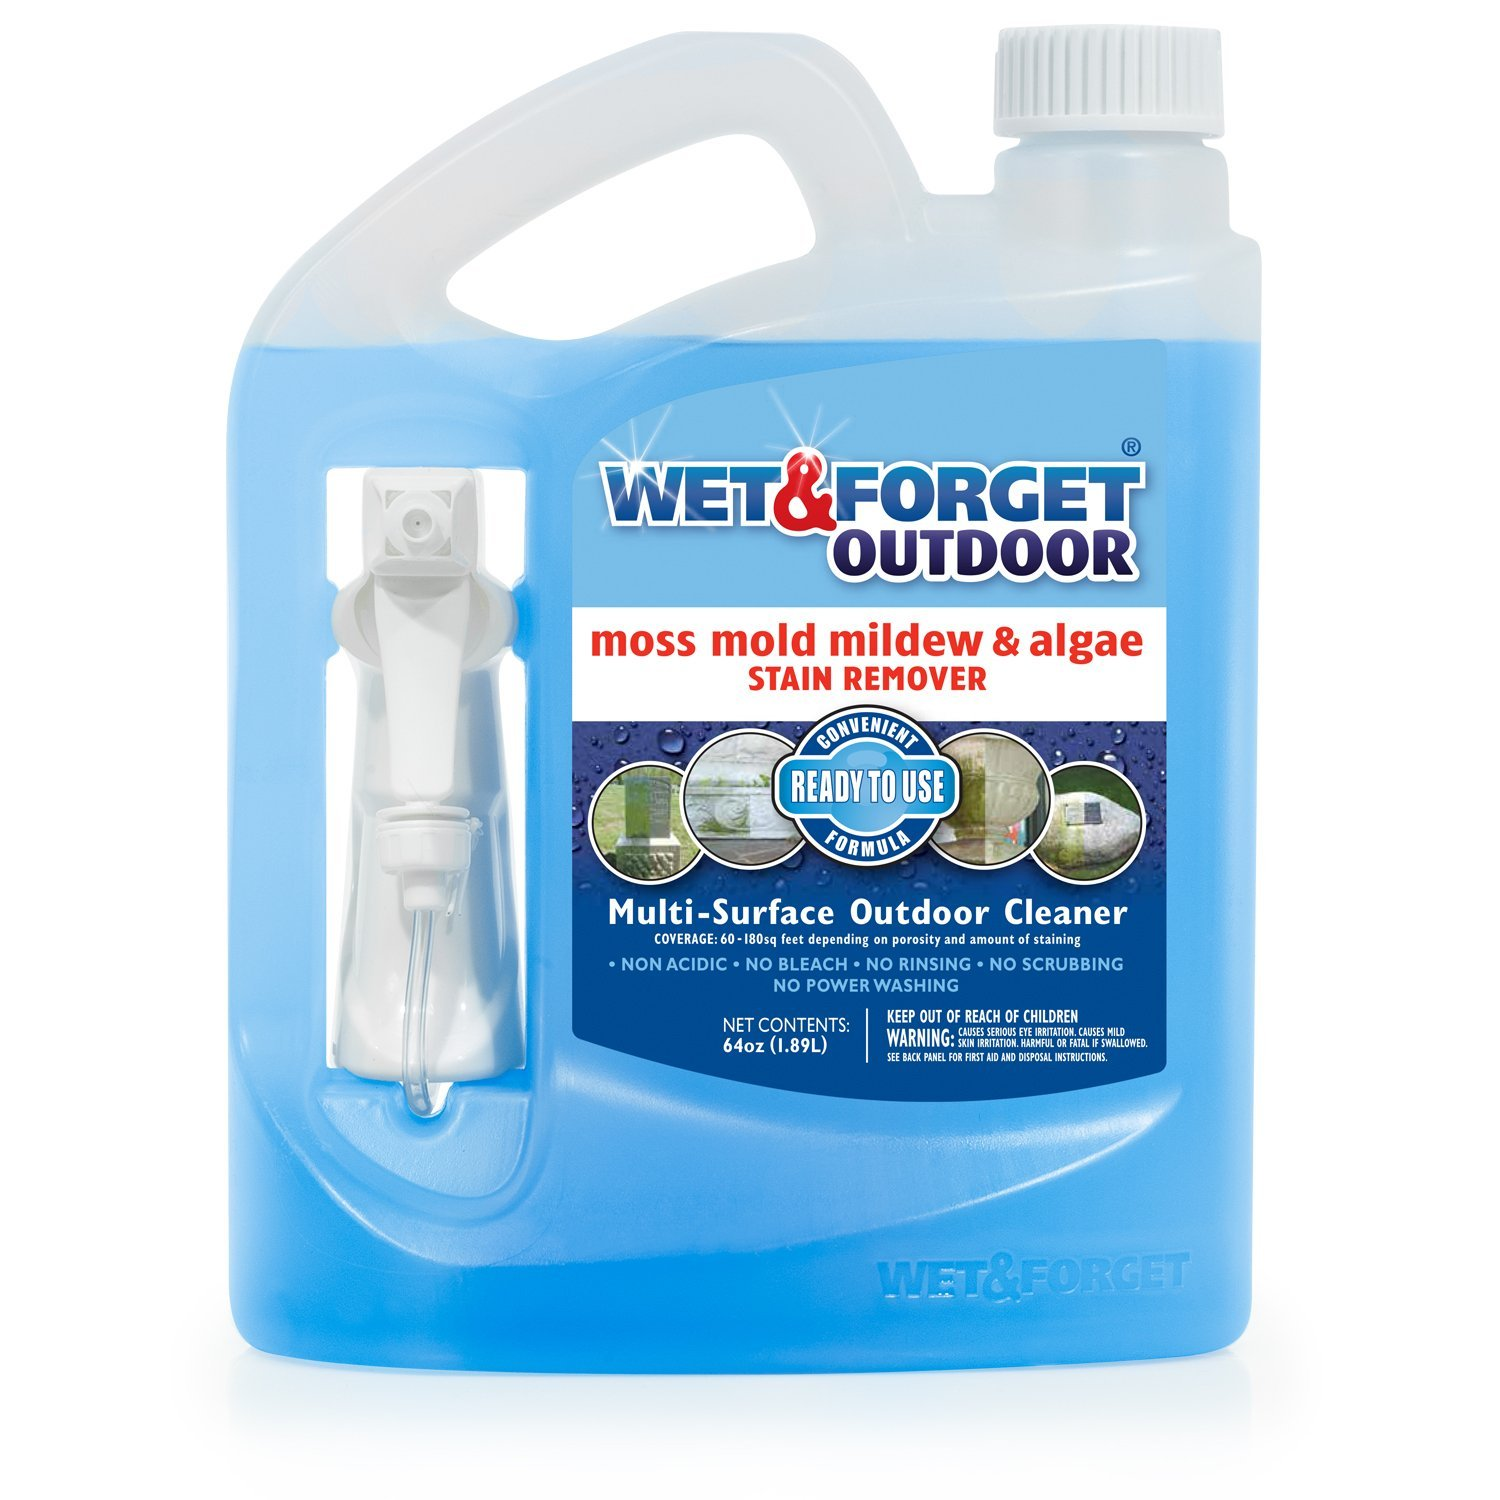 -WET & FORGET- Outdoor Ready to Use Moss, Mold, Mildew & Algae Stain Remover, 64 OZ.